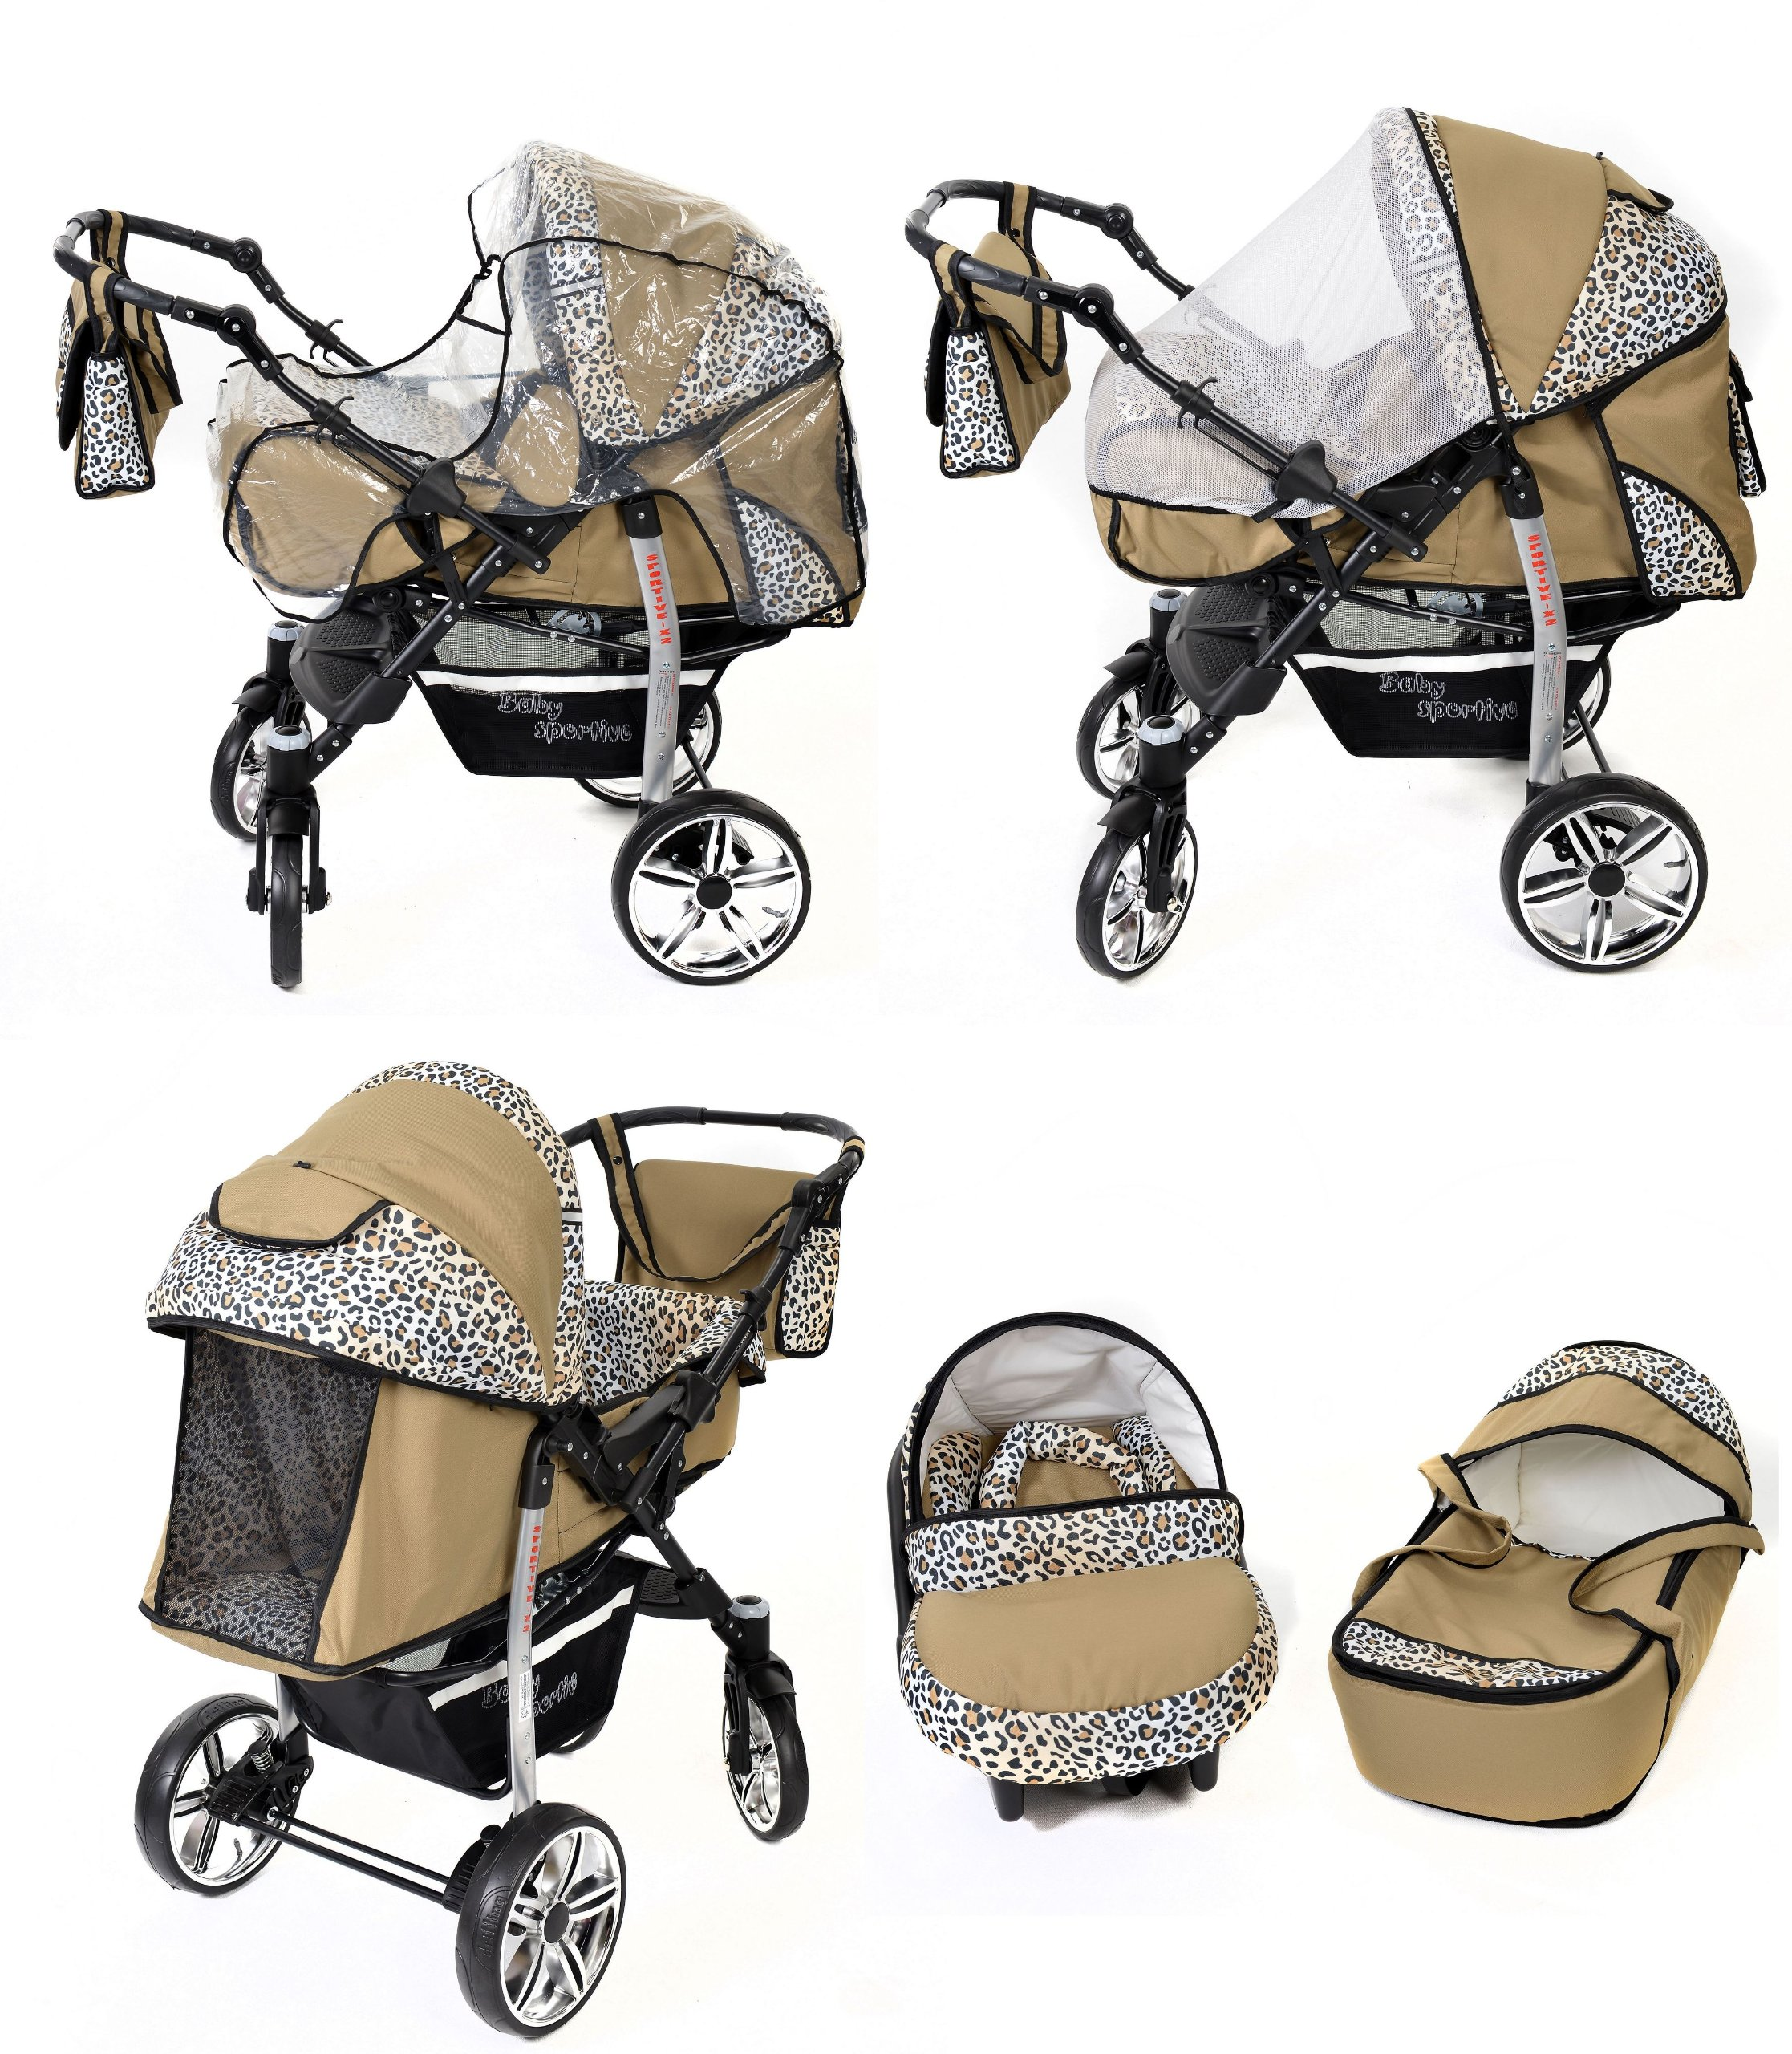 Sportive X2, 3-in-1 Travel System incl. Baby Pram with Swivel Wheels, Car Seat, Pushchair & Accessories (3-in-1 Travel System, Beige & Leopard) Baby Sportive 3 in 1 Travel System All in One Set - Pram, Car Carrier Seat and Sport Buggy + Accessories: carrier bag, rain protection, mosquito net, changing mat, removable bottle holder and removable tray for your child's bits and pieces Suitable from birth, Easy Quick Folding System; Large storage basket; Turnable handle bar that allows to face or rear the drive direction; Quick release rear wheels for easy cleaning after muddy walks Front lockable 360o swivel wheels for manoeuvrability , Small sized when folded, fits into many small car trunks, Carry-cot with a removable hood, Reflective elements for better visibility 7